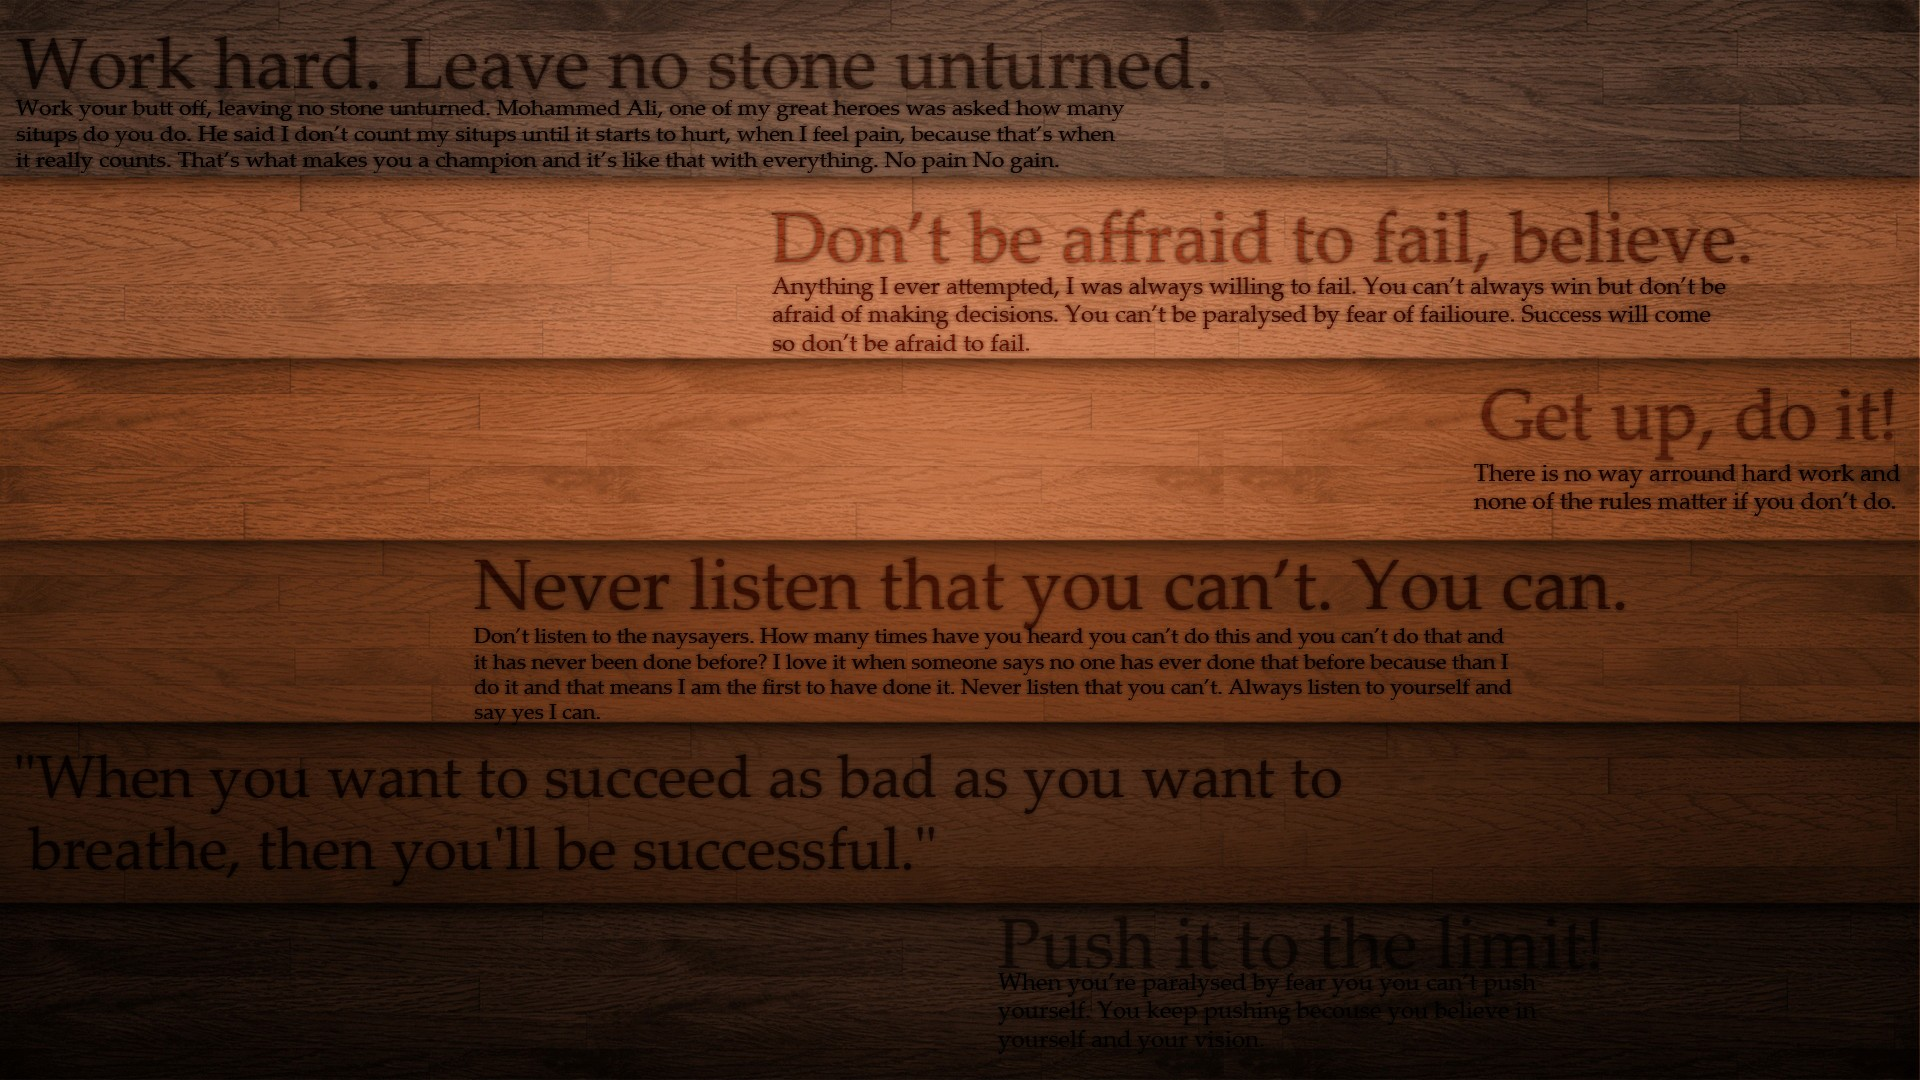 Steve Jobs Motivational Quotes Wallpaper 92 Motivational Hd Wallpapers Background Images